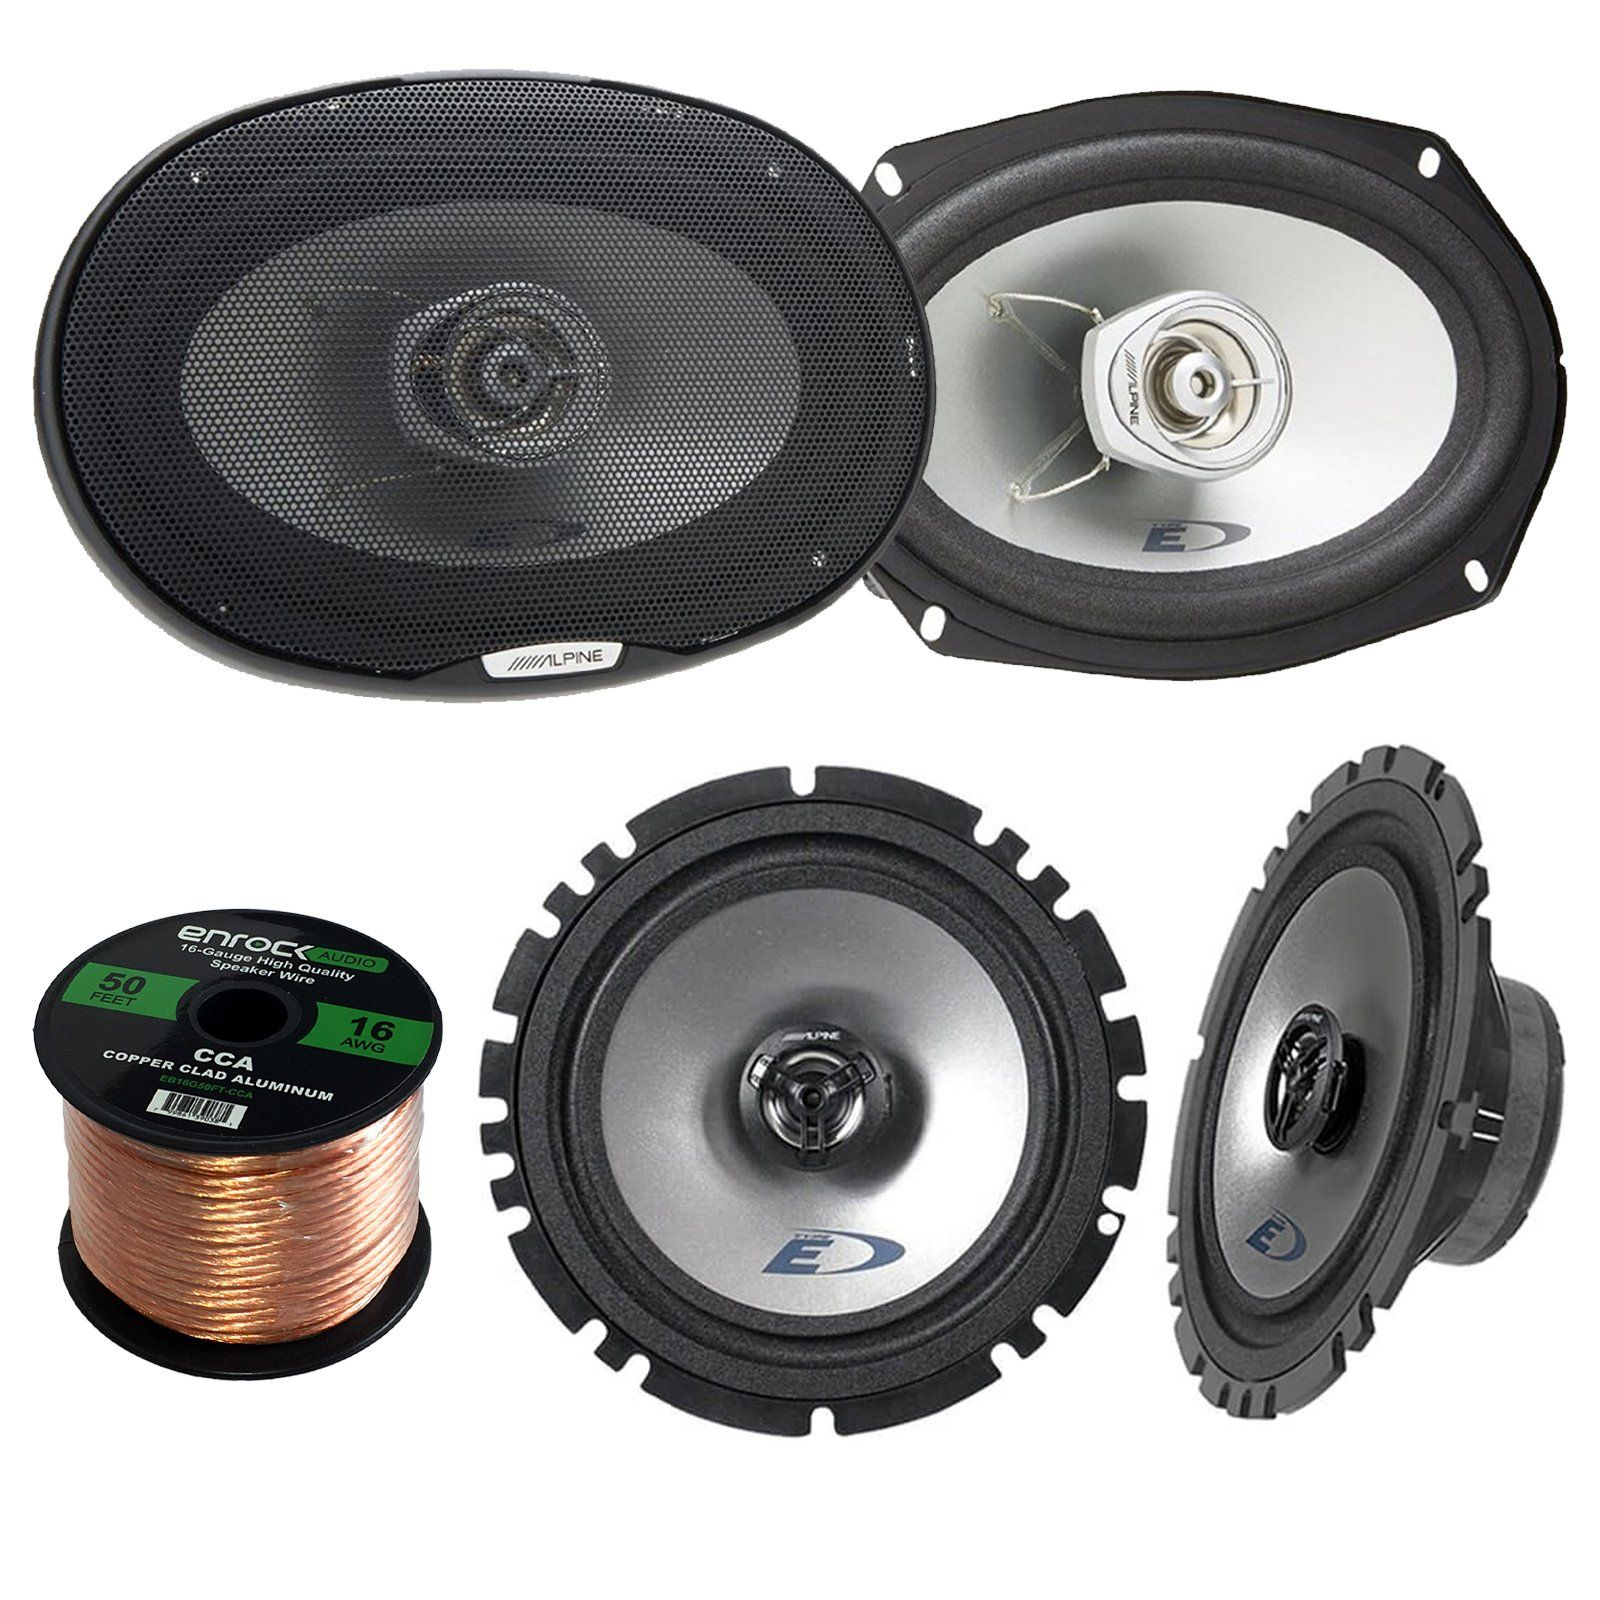 "2x Alpine SXE-1725S 6.5"" 80 Watt 2-Way Coaxial Car Audio Speakers Bundle  Combo With 2x SXE-6925S 6x9 Inch 280 Watts 2-Way Vehicle Speaker - 1 Enrock  50 Feet ..."